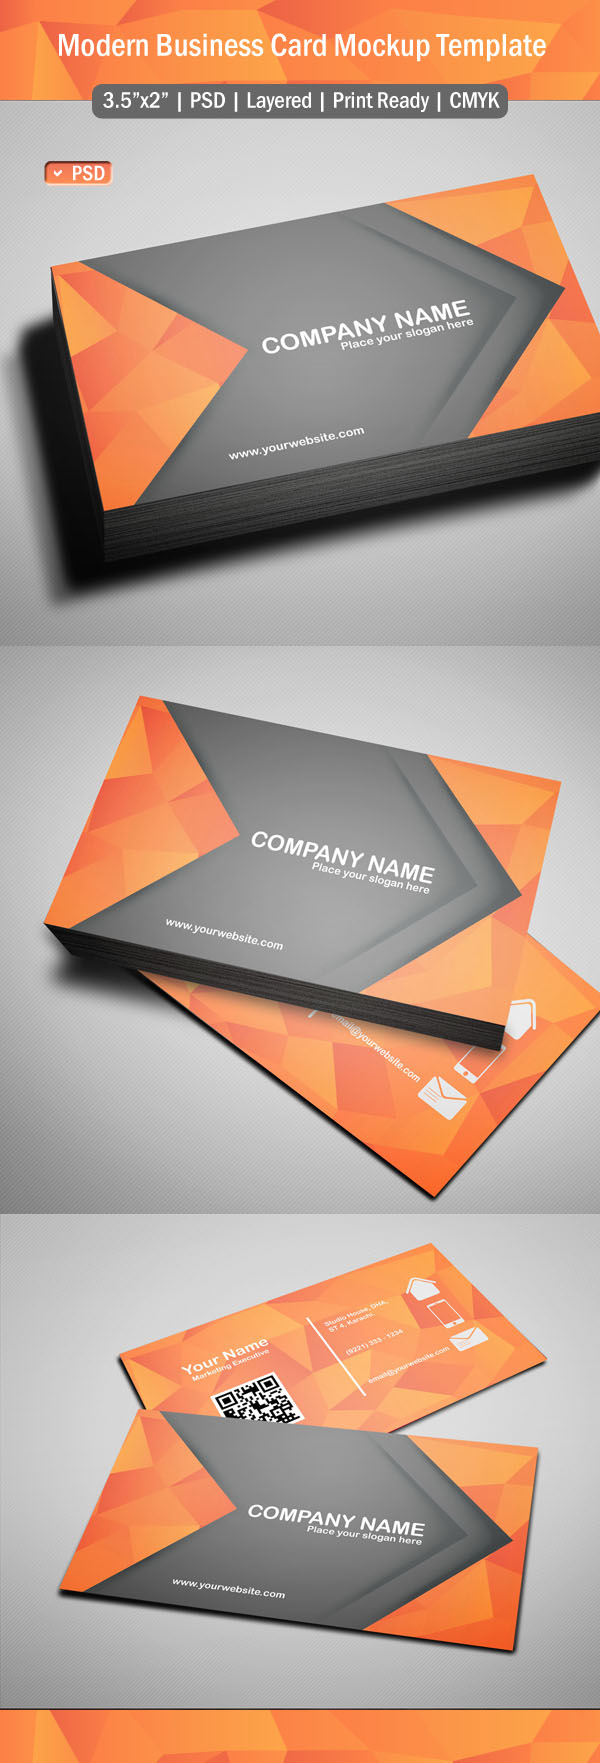 Free psd files download 25 ui design photoshop psd resources free modern business card template psd reheart Image collections